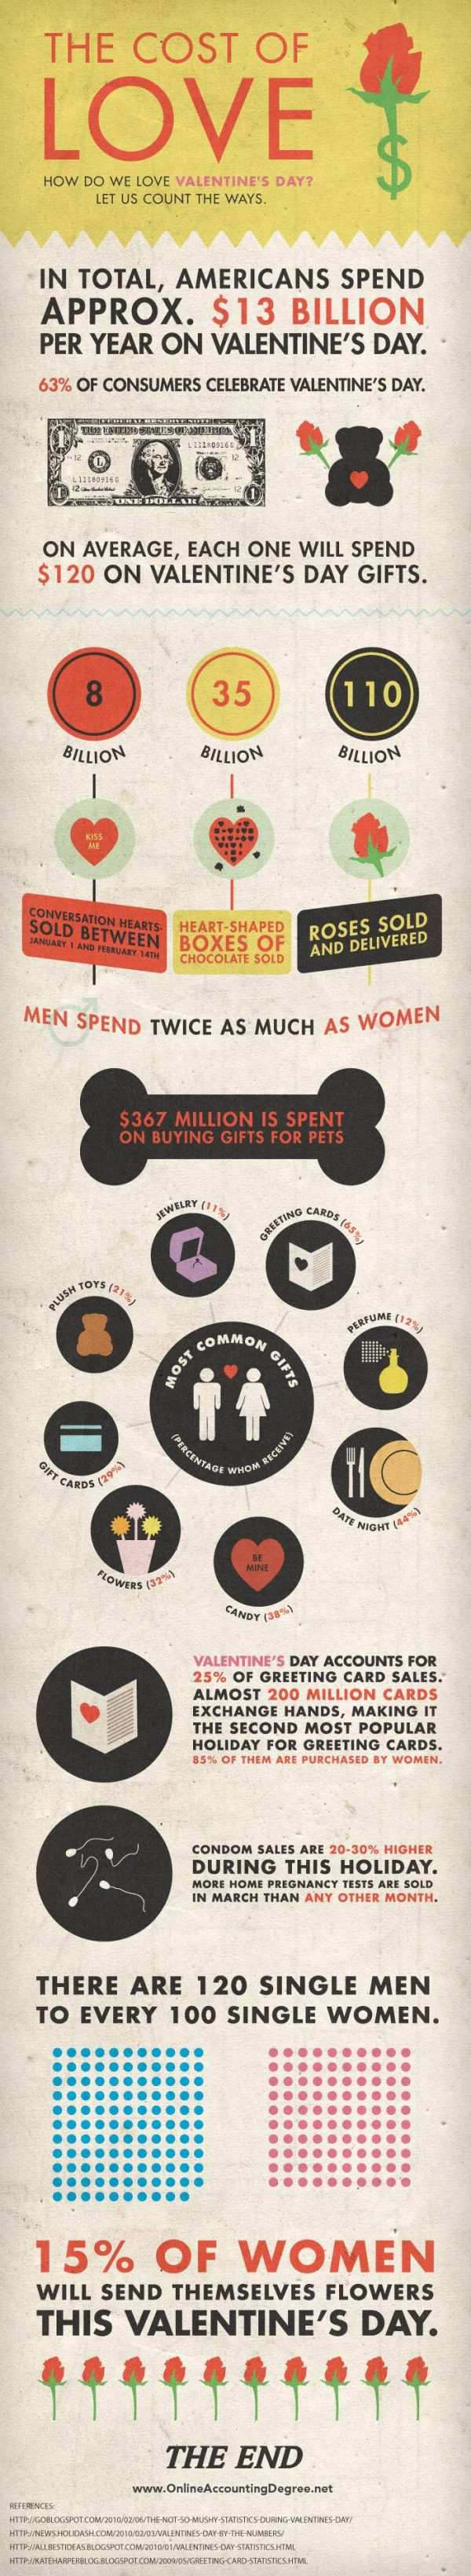 The Cost of Valentine's Day (Infographic)